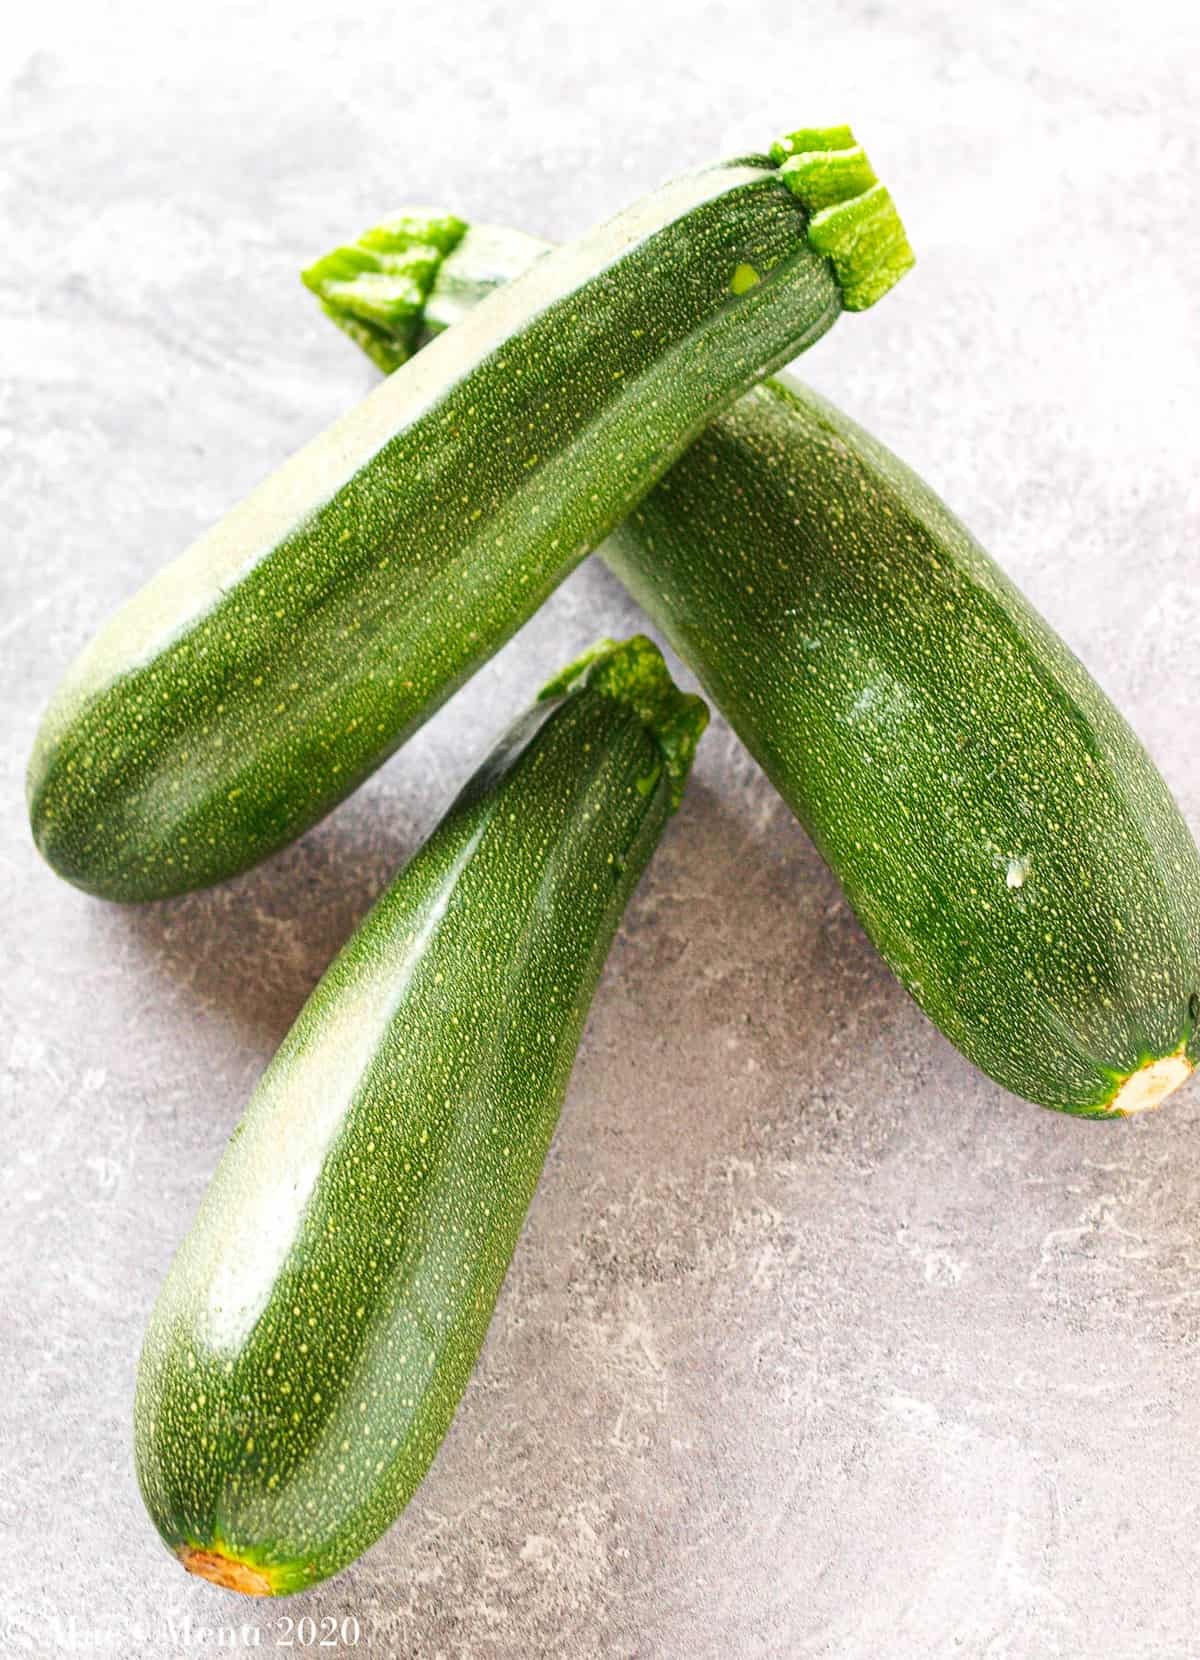 3 medium zucchini resting on eachother